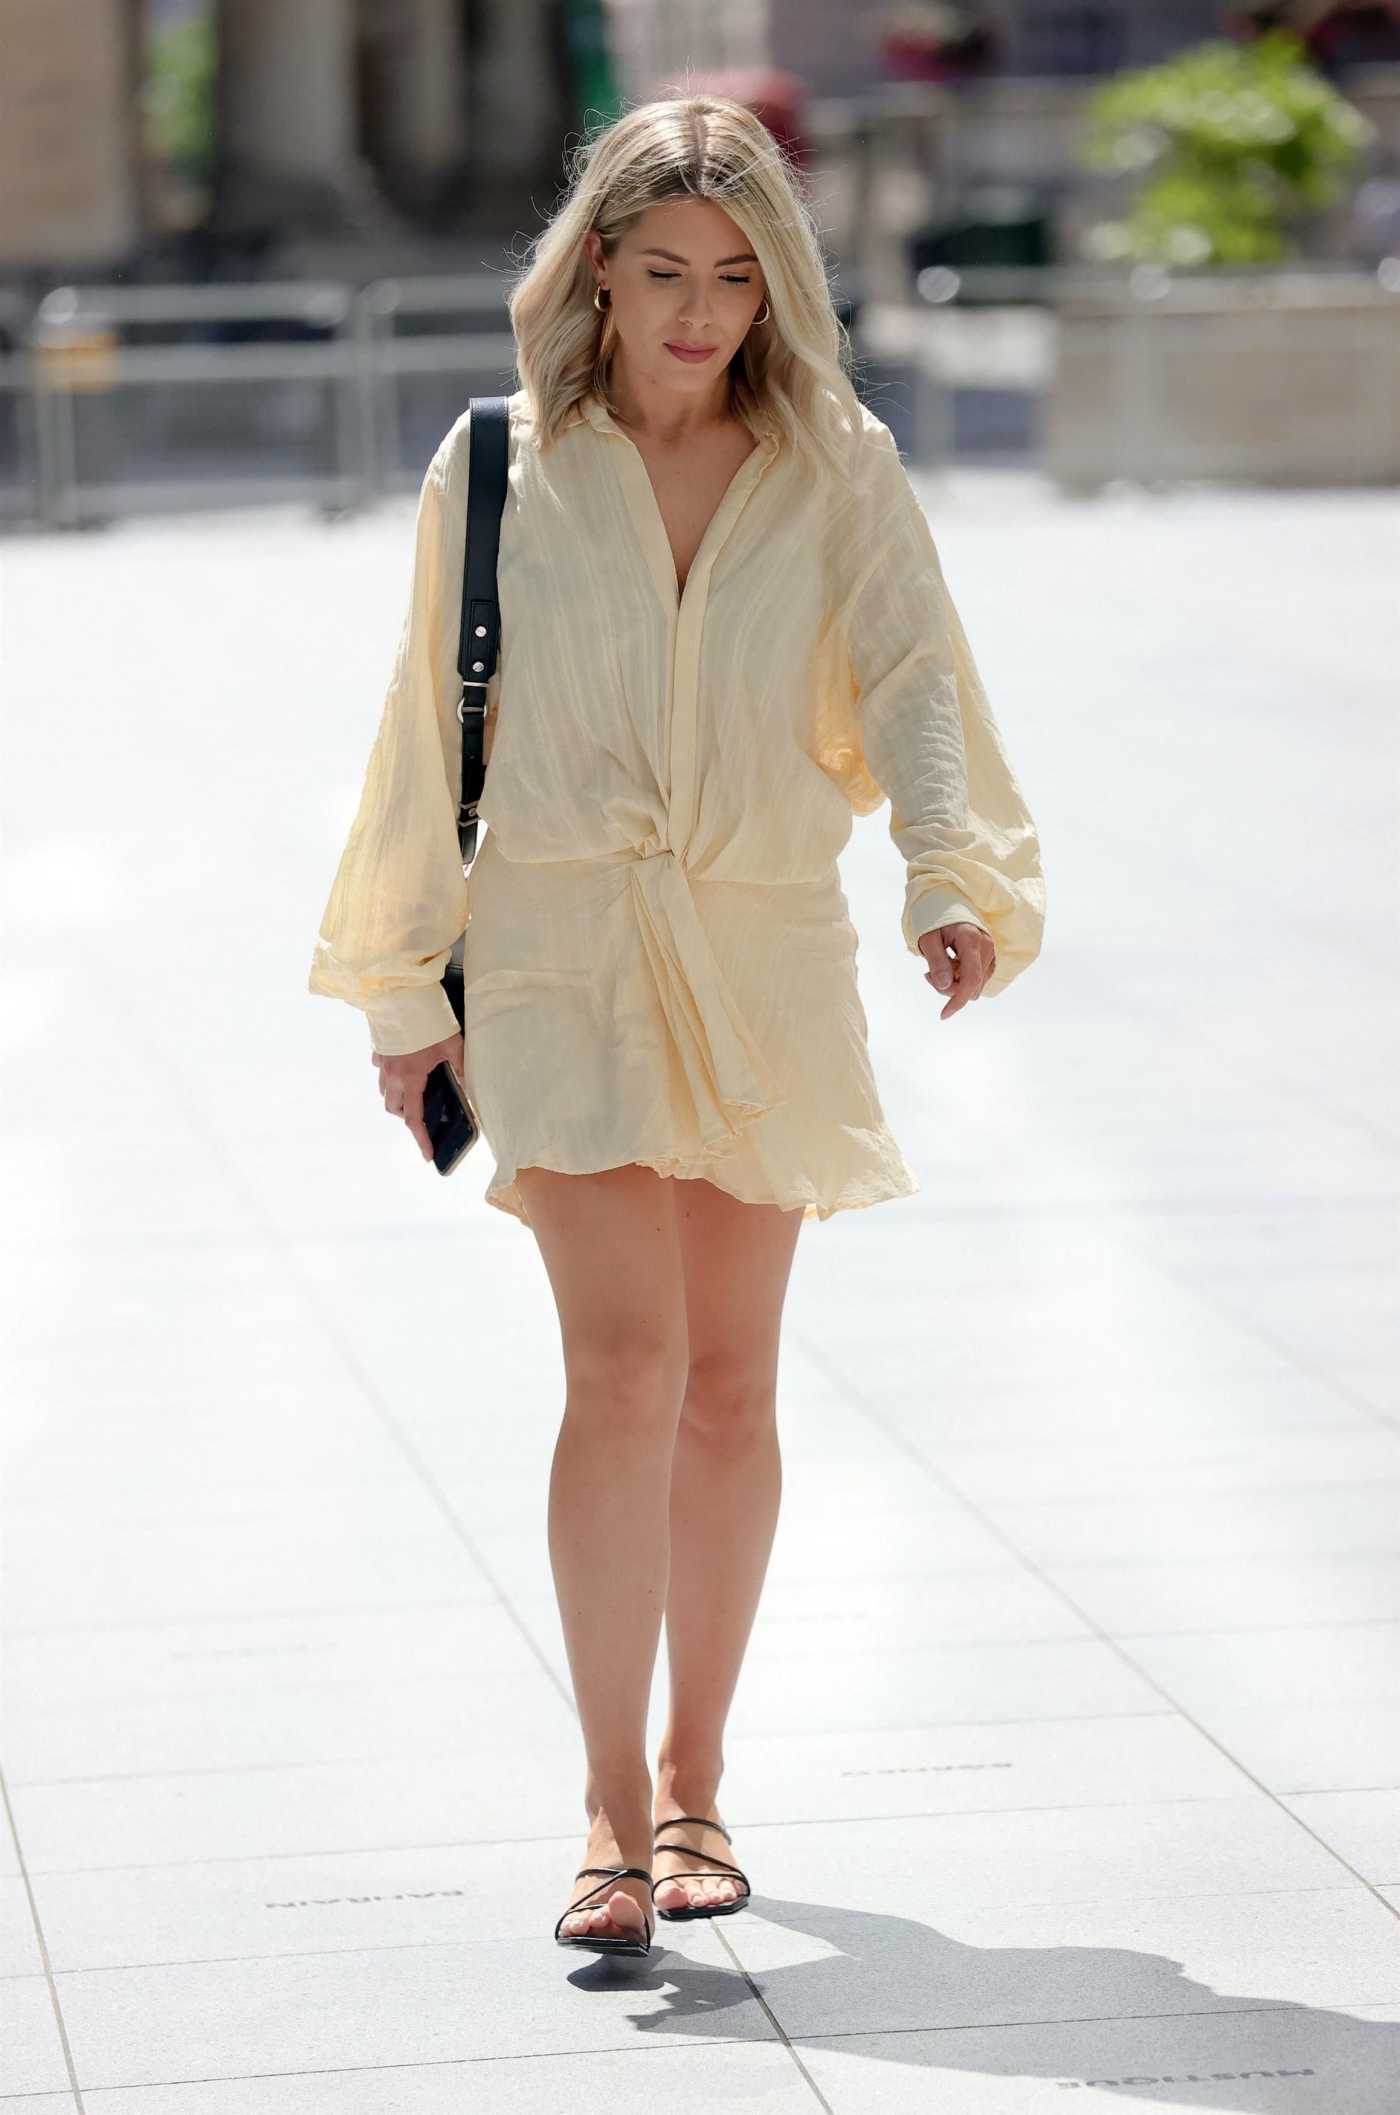 Mollie King in a Cream Mini Dress Arrives at the BBC Studios in London 07/16/2021